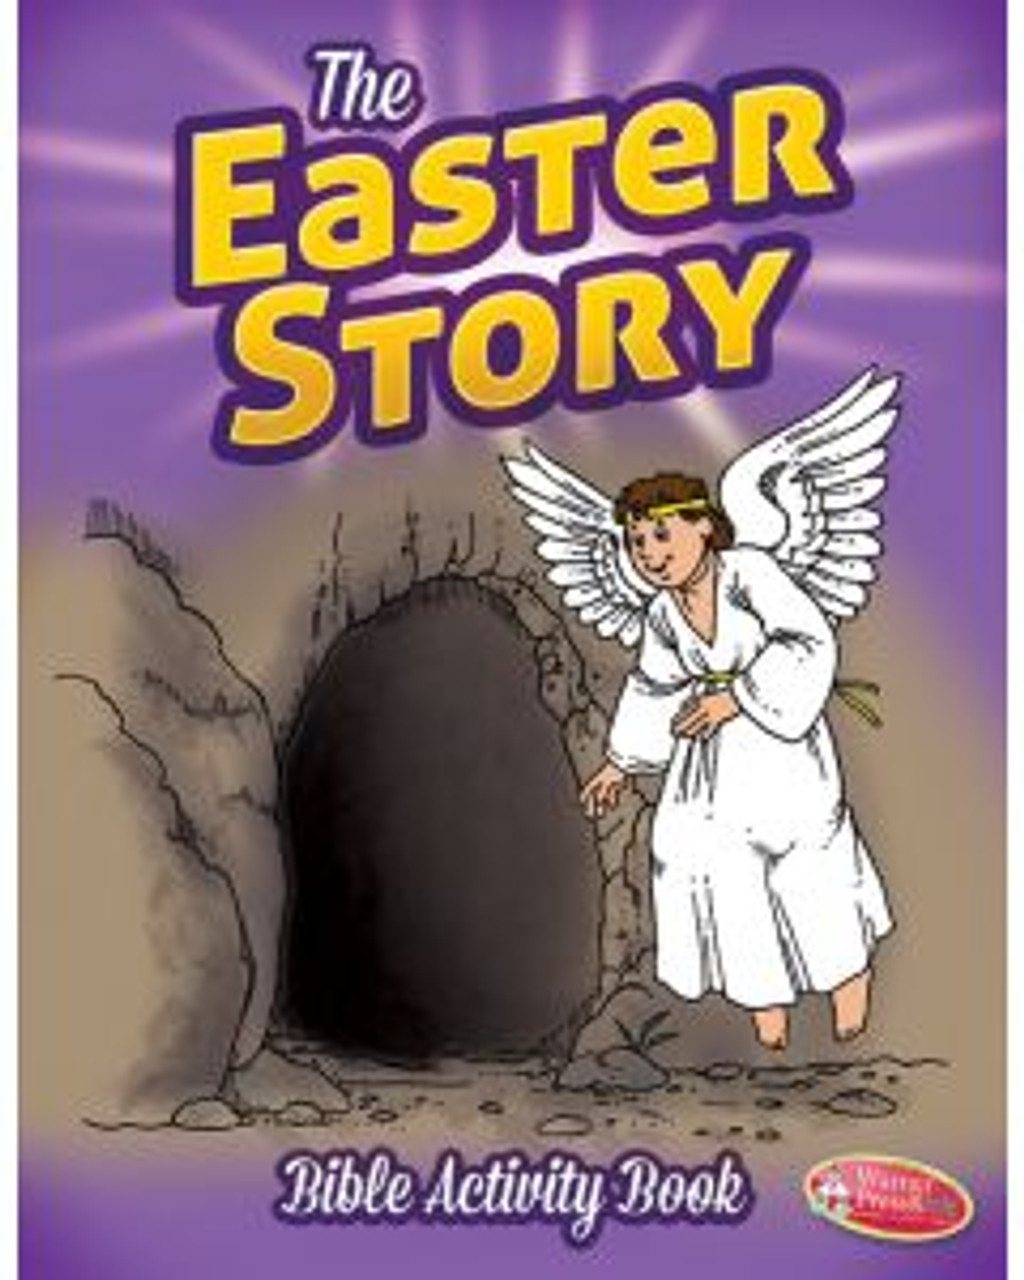 The Easter Story (activity book)